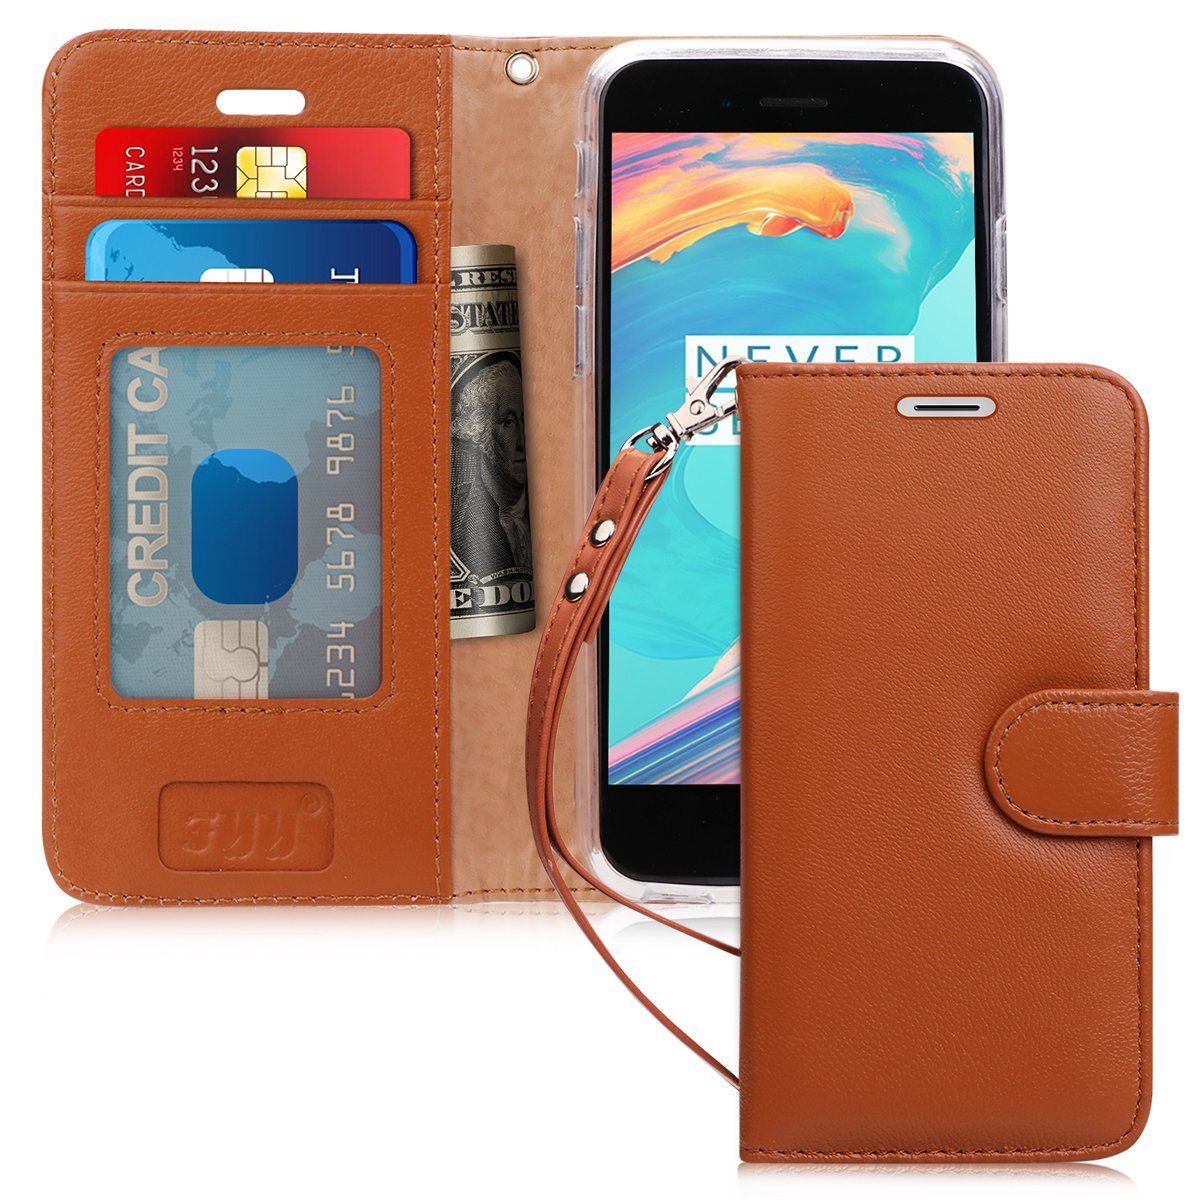 Genuine Leather Wallet Case for iPhone 6/6S